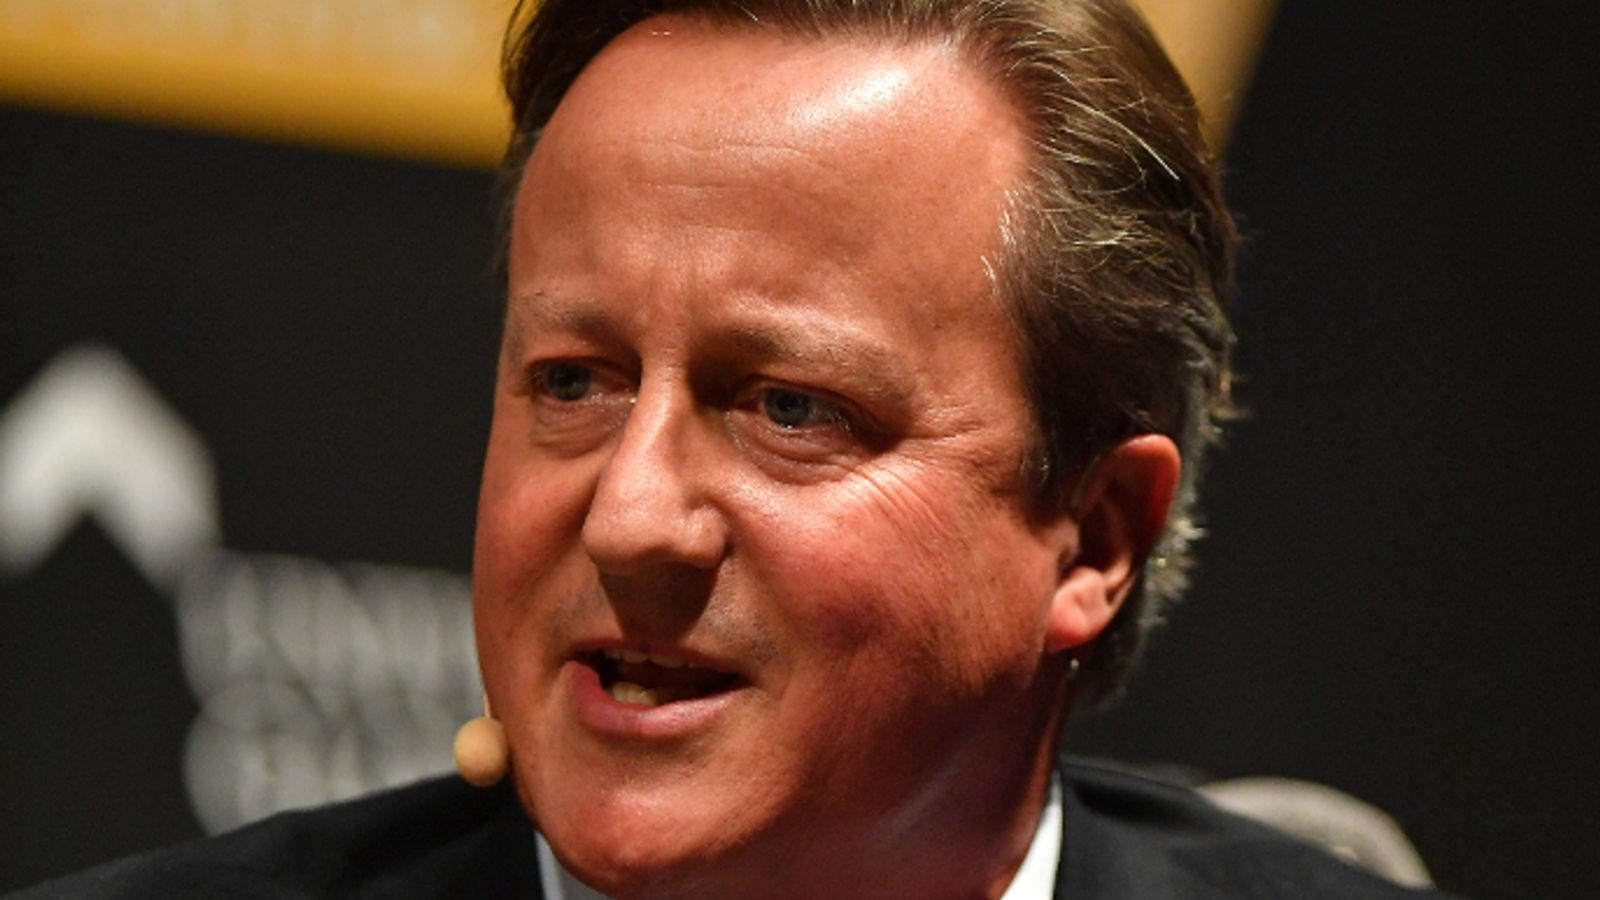 Greensill: David Cameron will respond 'positively' to any request for evidence from lobbying inquiries